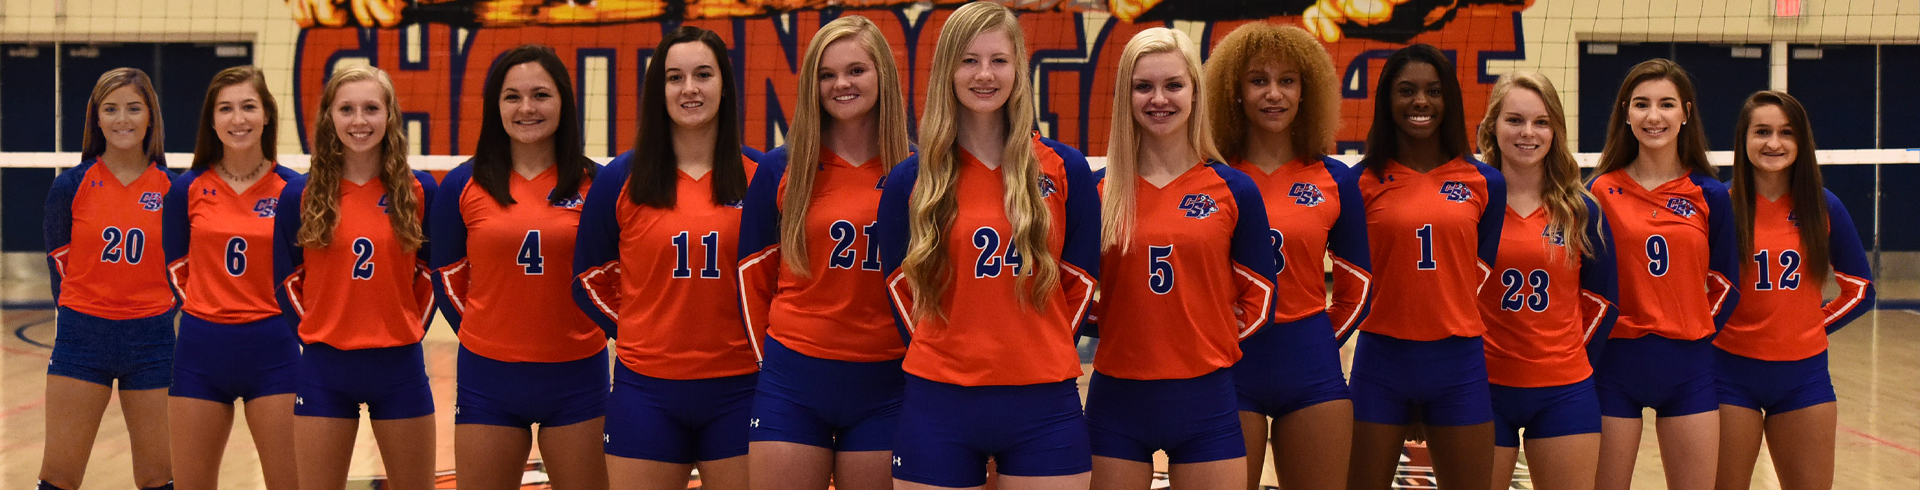 volleyball banner photo